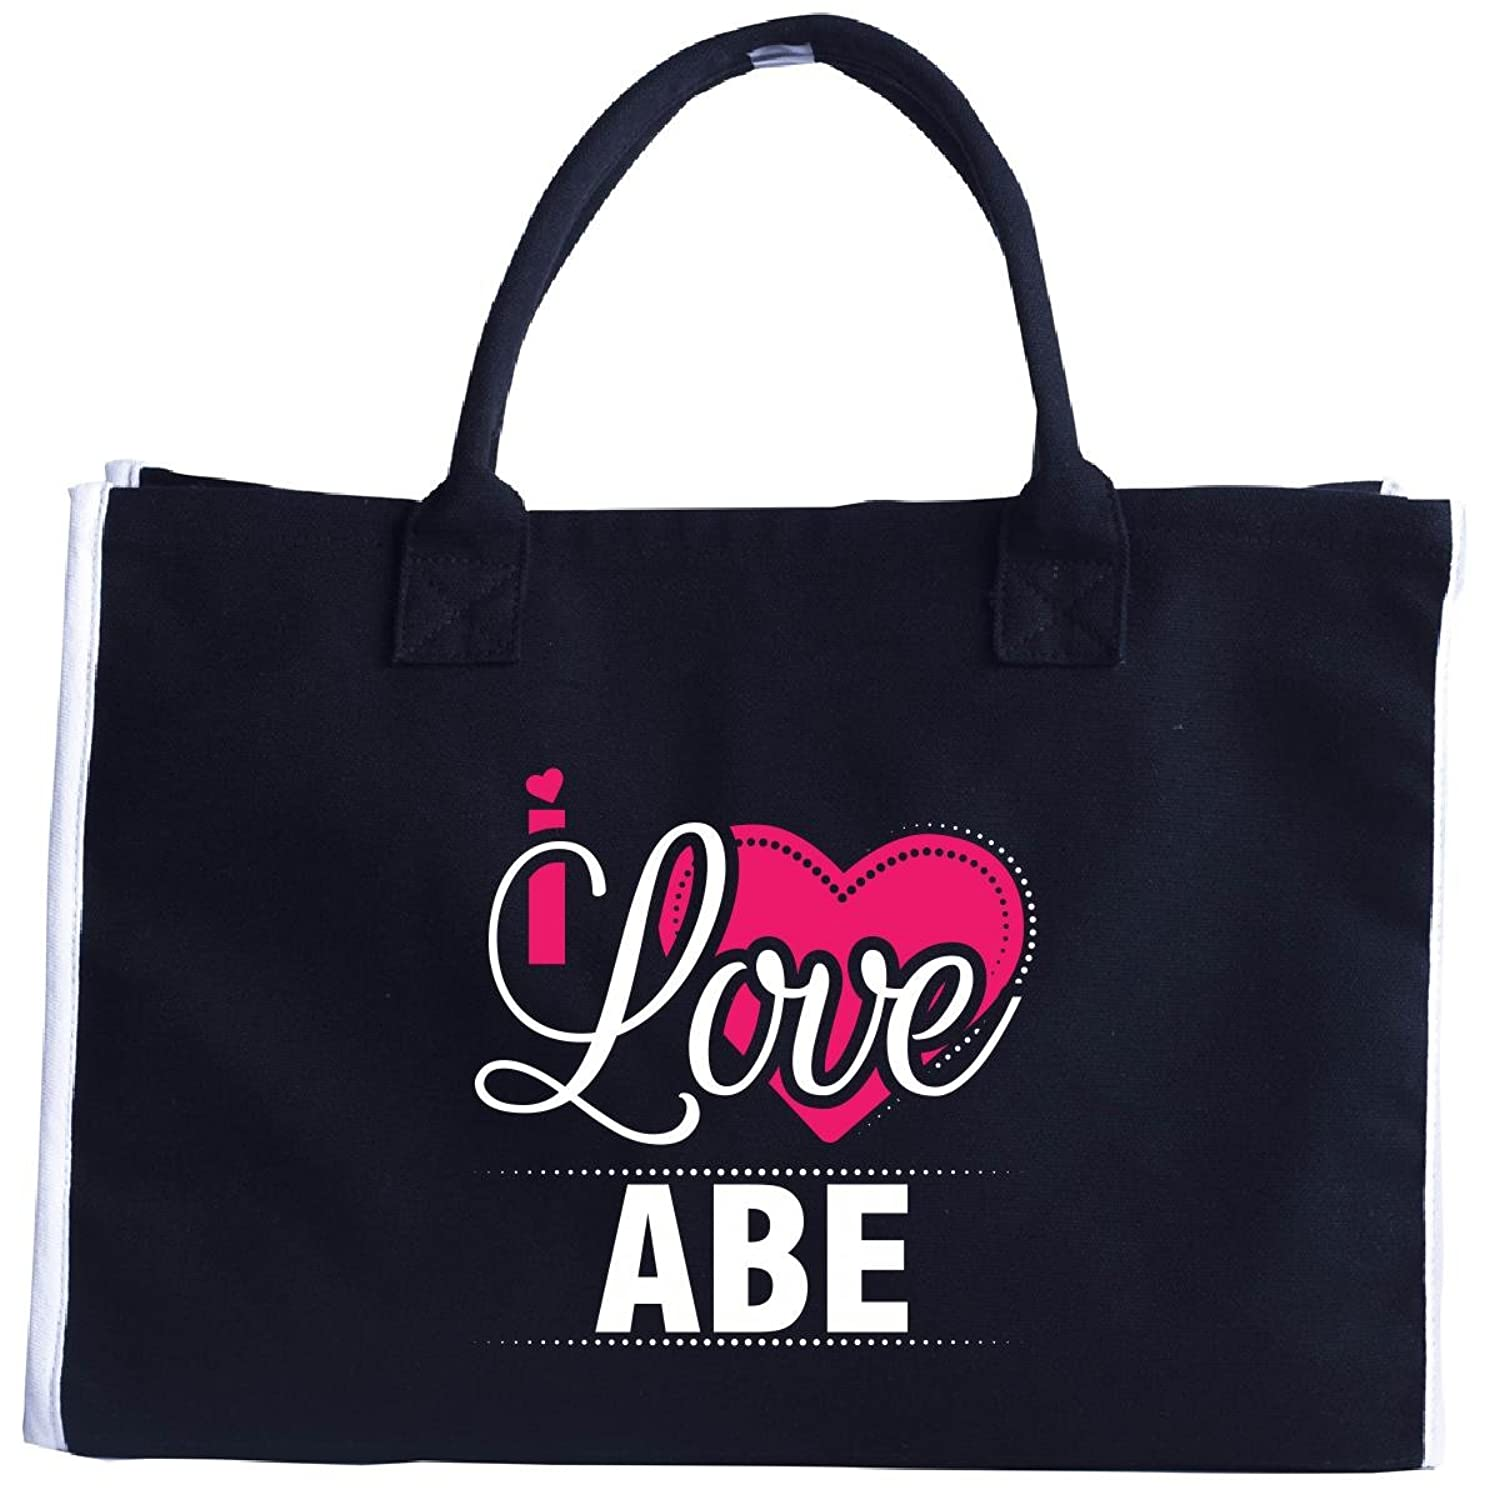 I Love Abe - Cool Gift For Abe From Girlfriend - Tote Bag